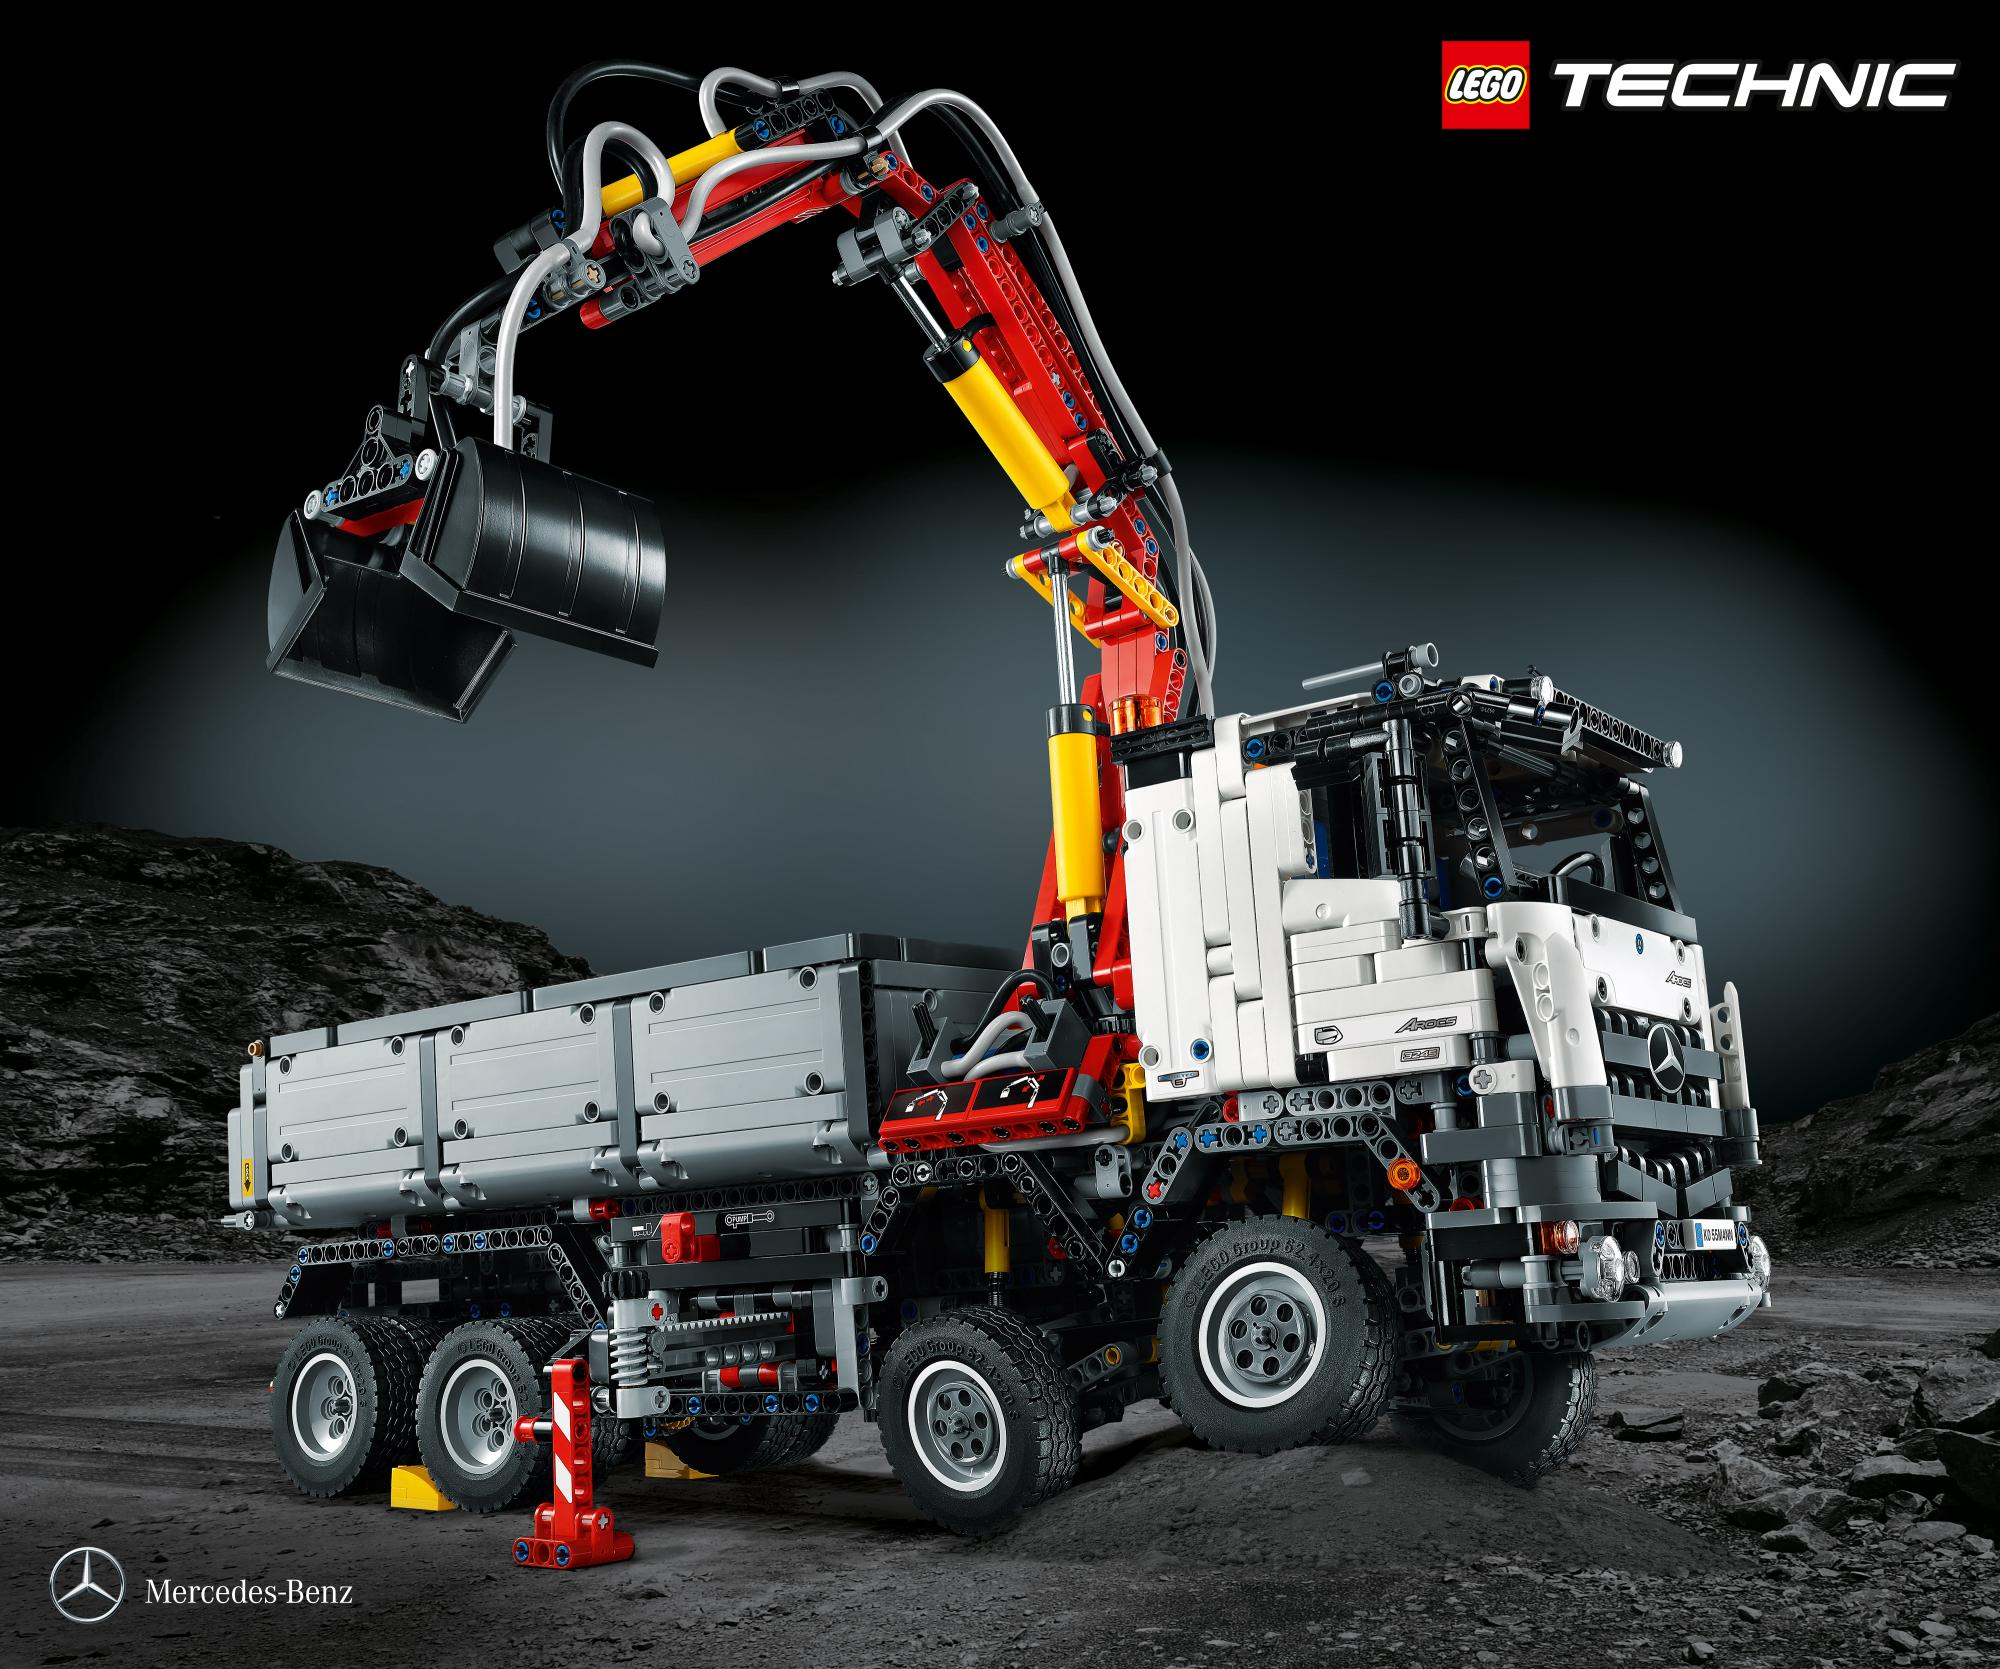 mercedes benz arocs 3245 launched it 39 s a lego technic truck made of almost 3 000 pieces. Black Bedroom Furniture Sets. Home Design Ideas